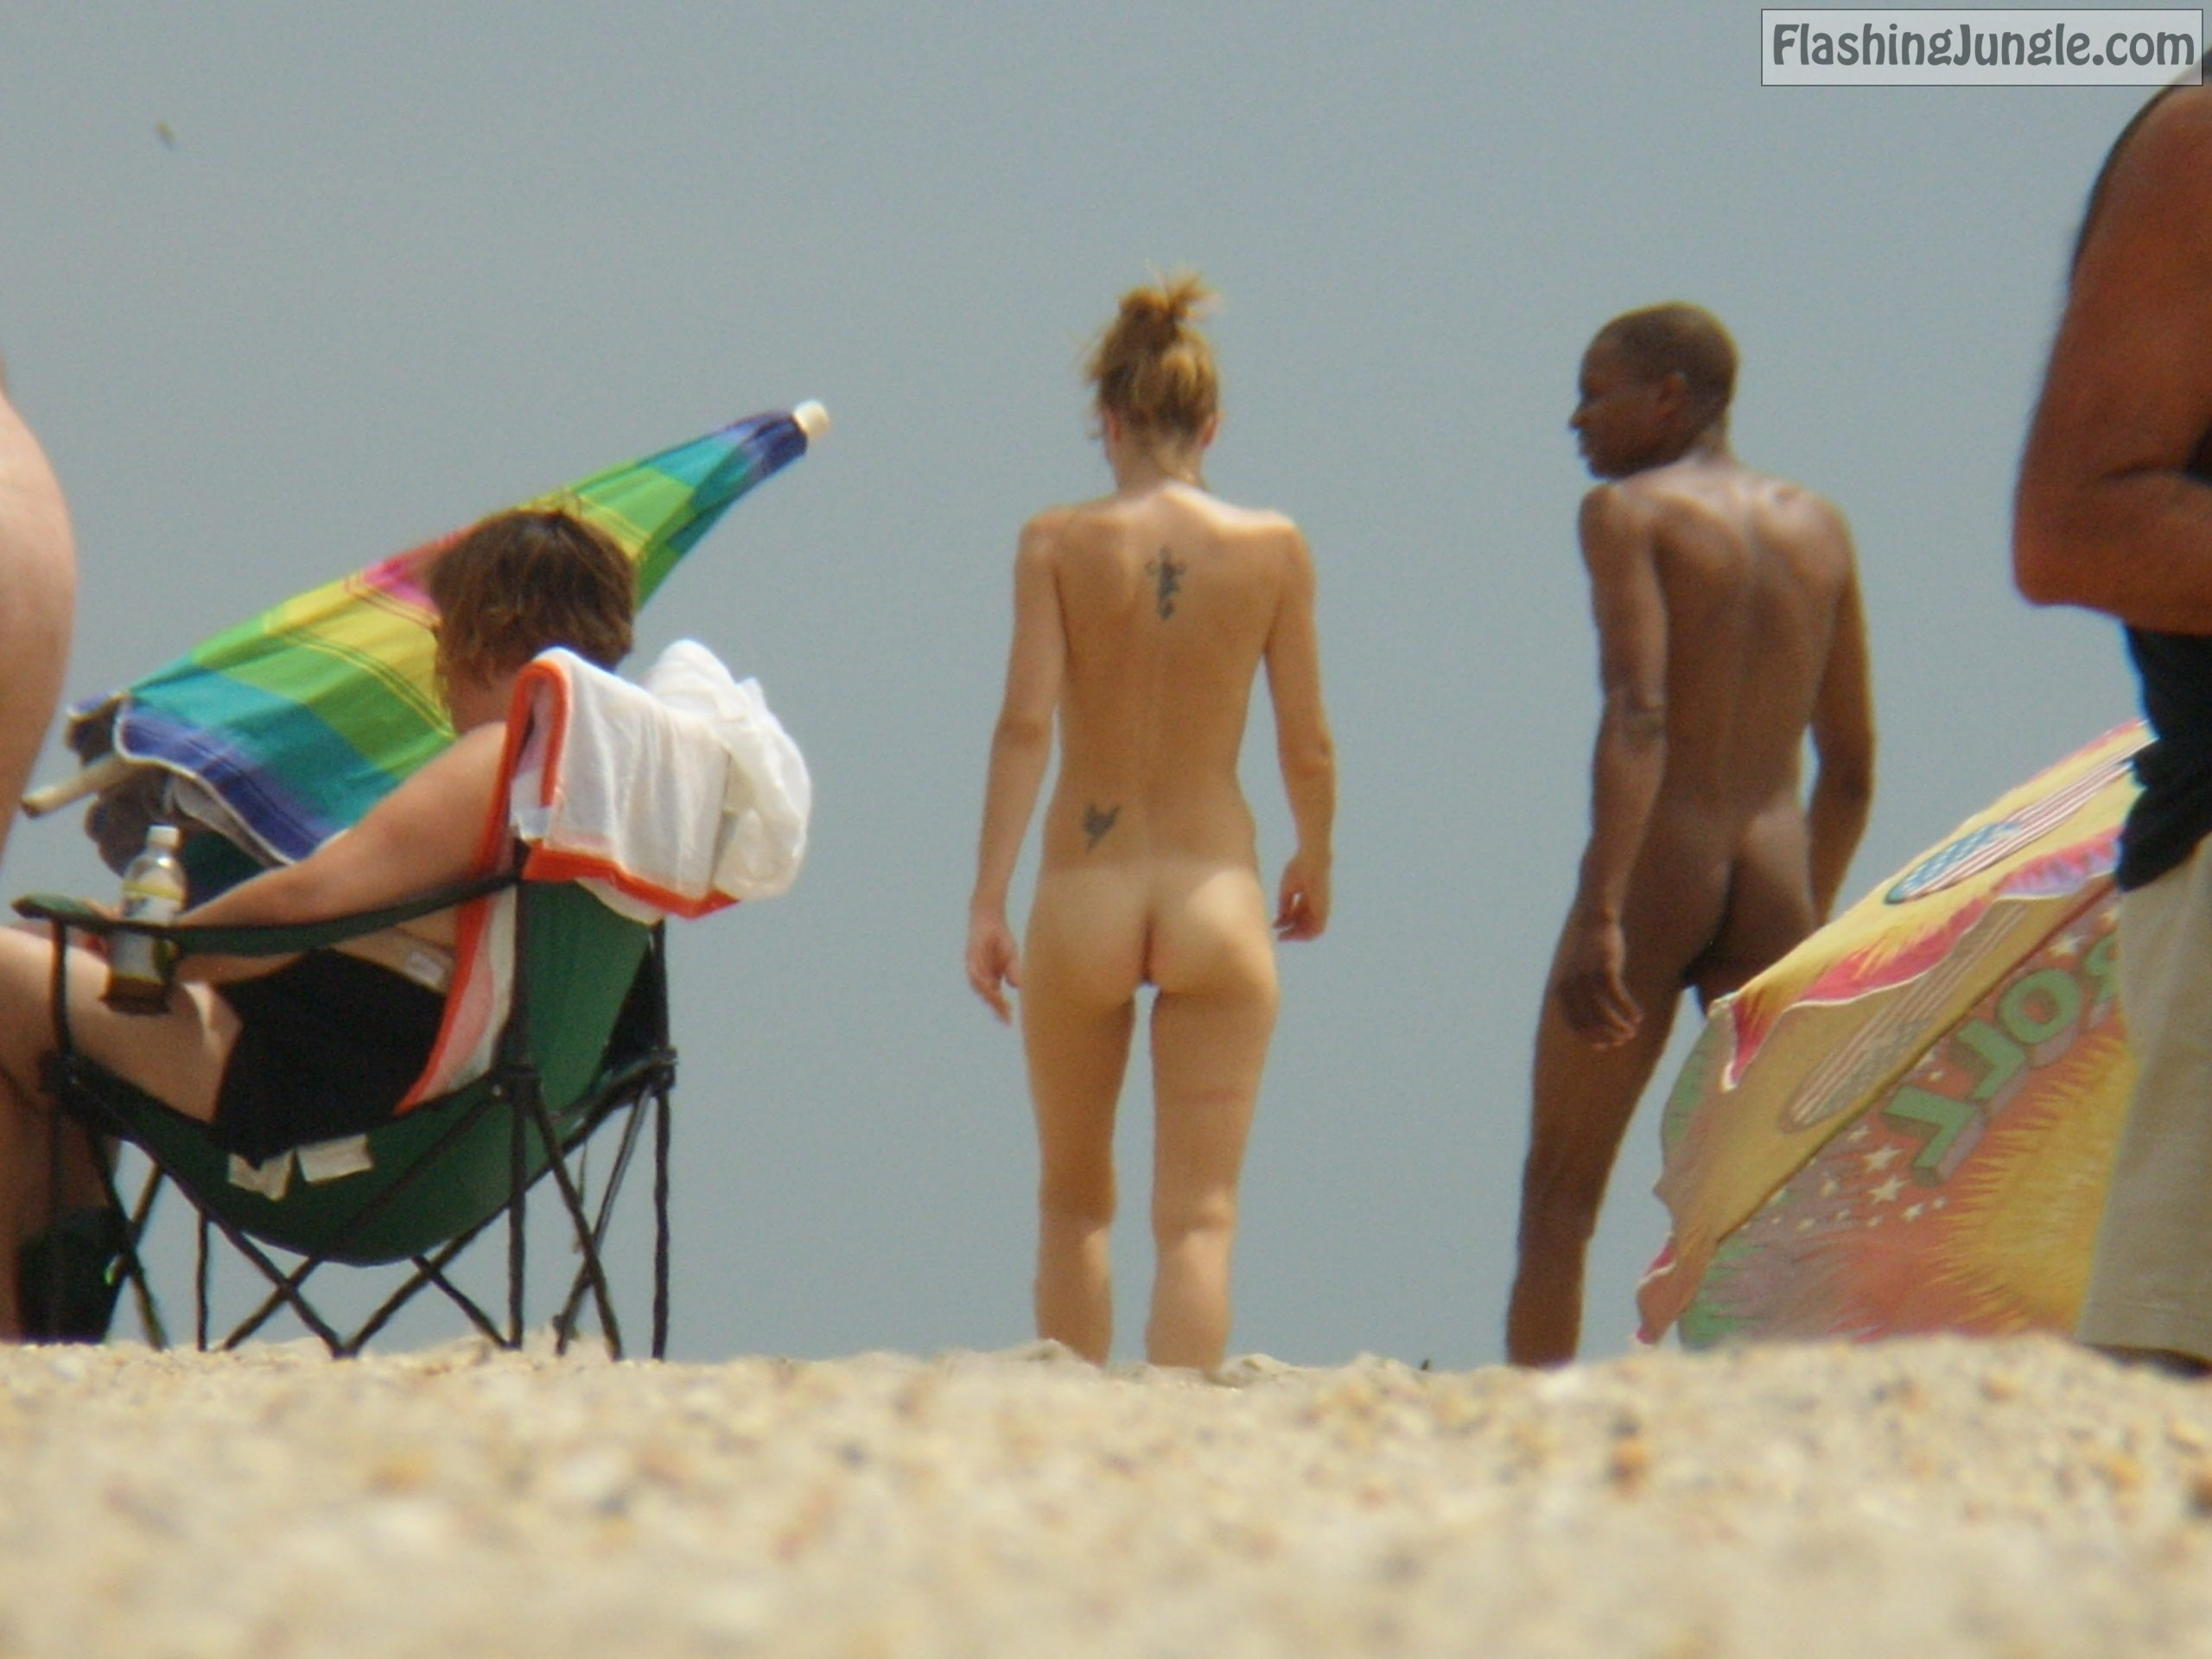 Slim beach bitch (3) voyeur real nudity nude beach